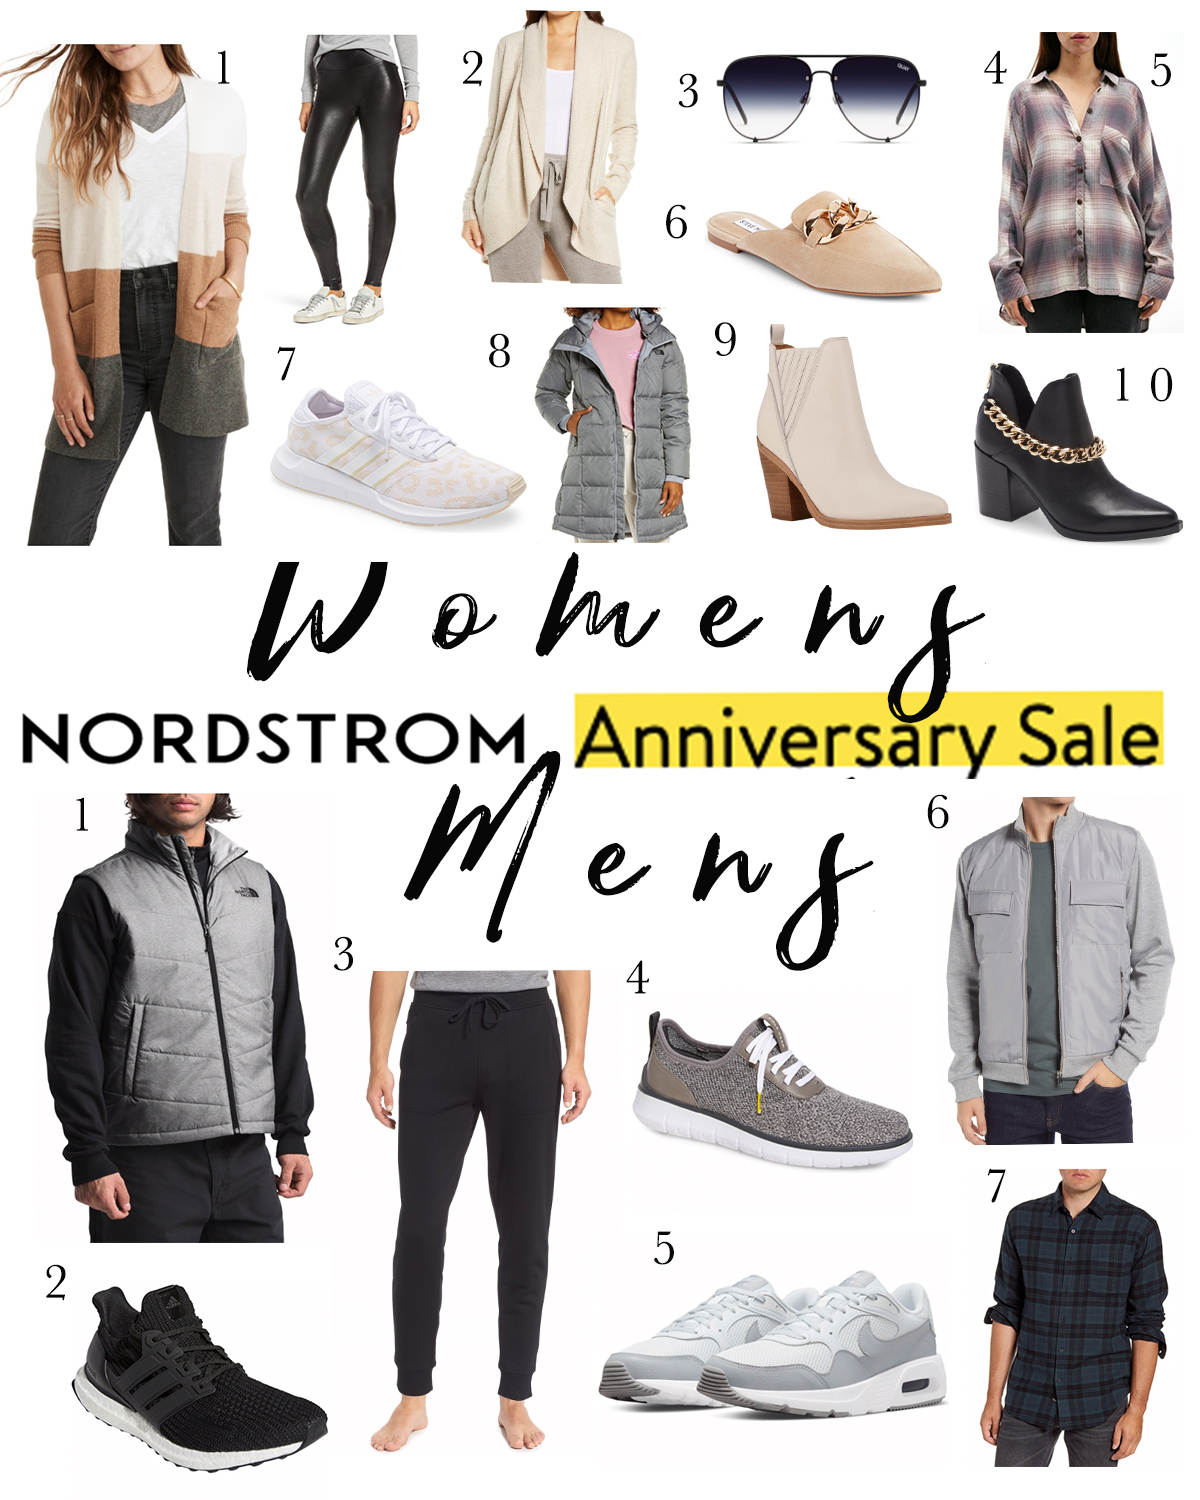 Nordstrom Anniversary Sale 2021 Women's and Men's Guides